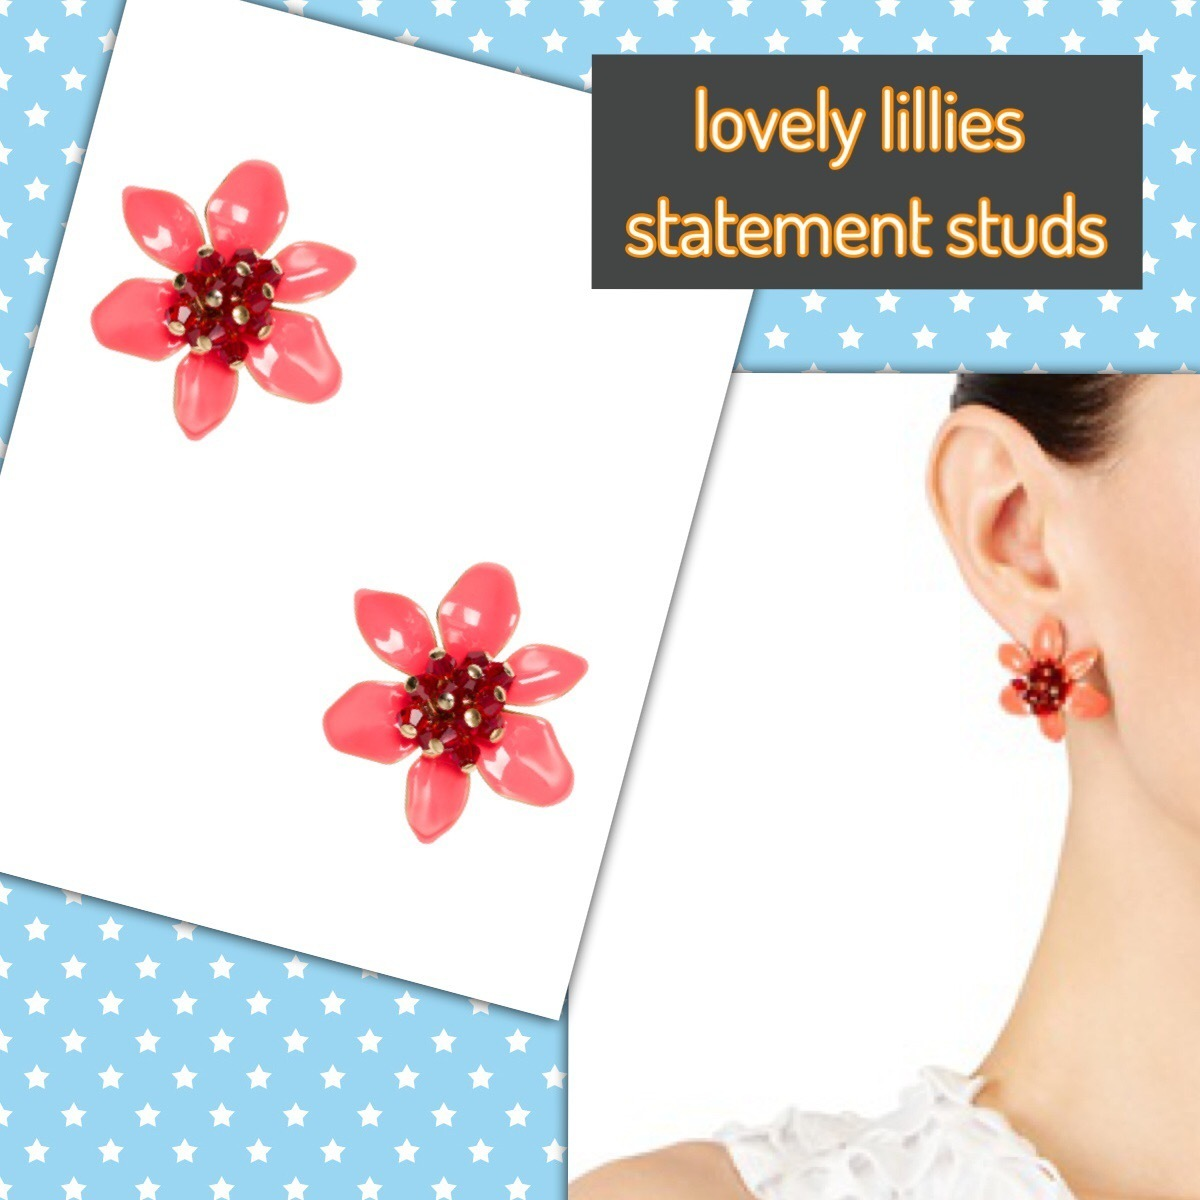 kate spade / ピアス / lovely lilies statement studs